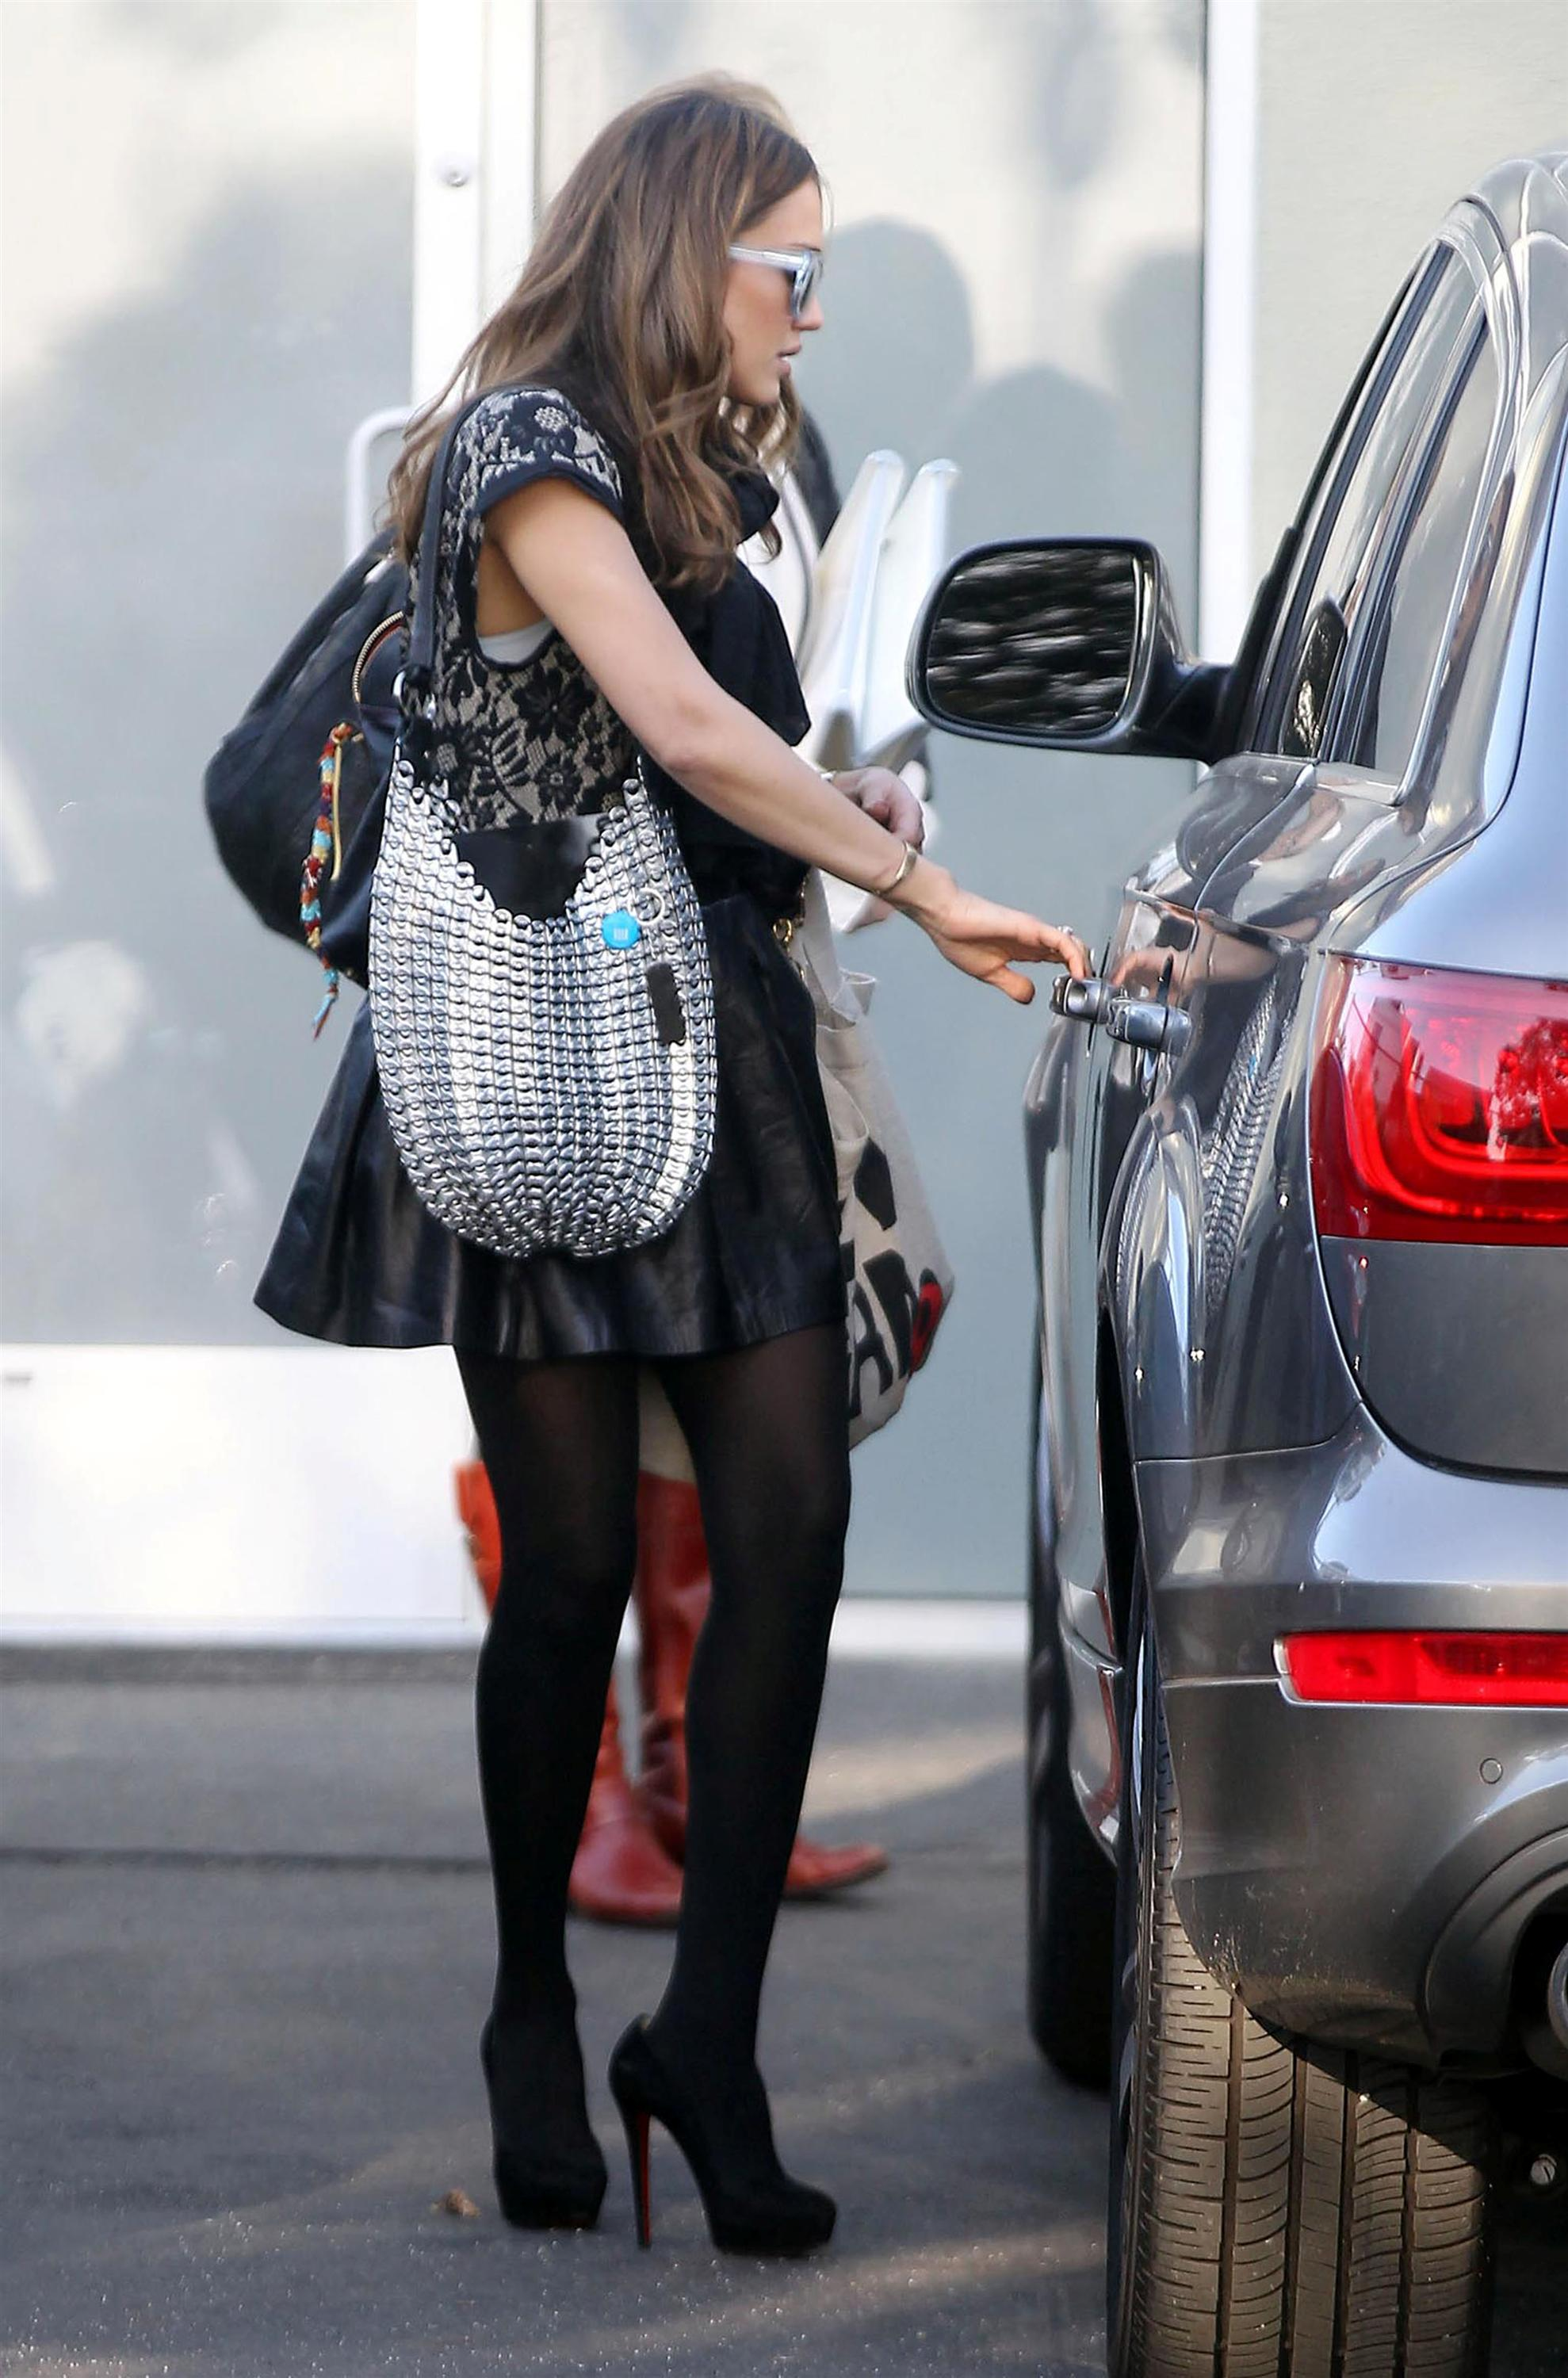 Sorry, that jessica alba wearing pantyhose think